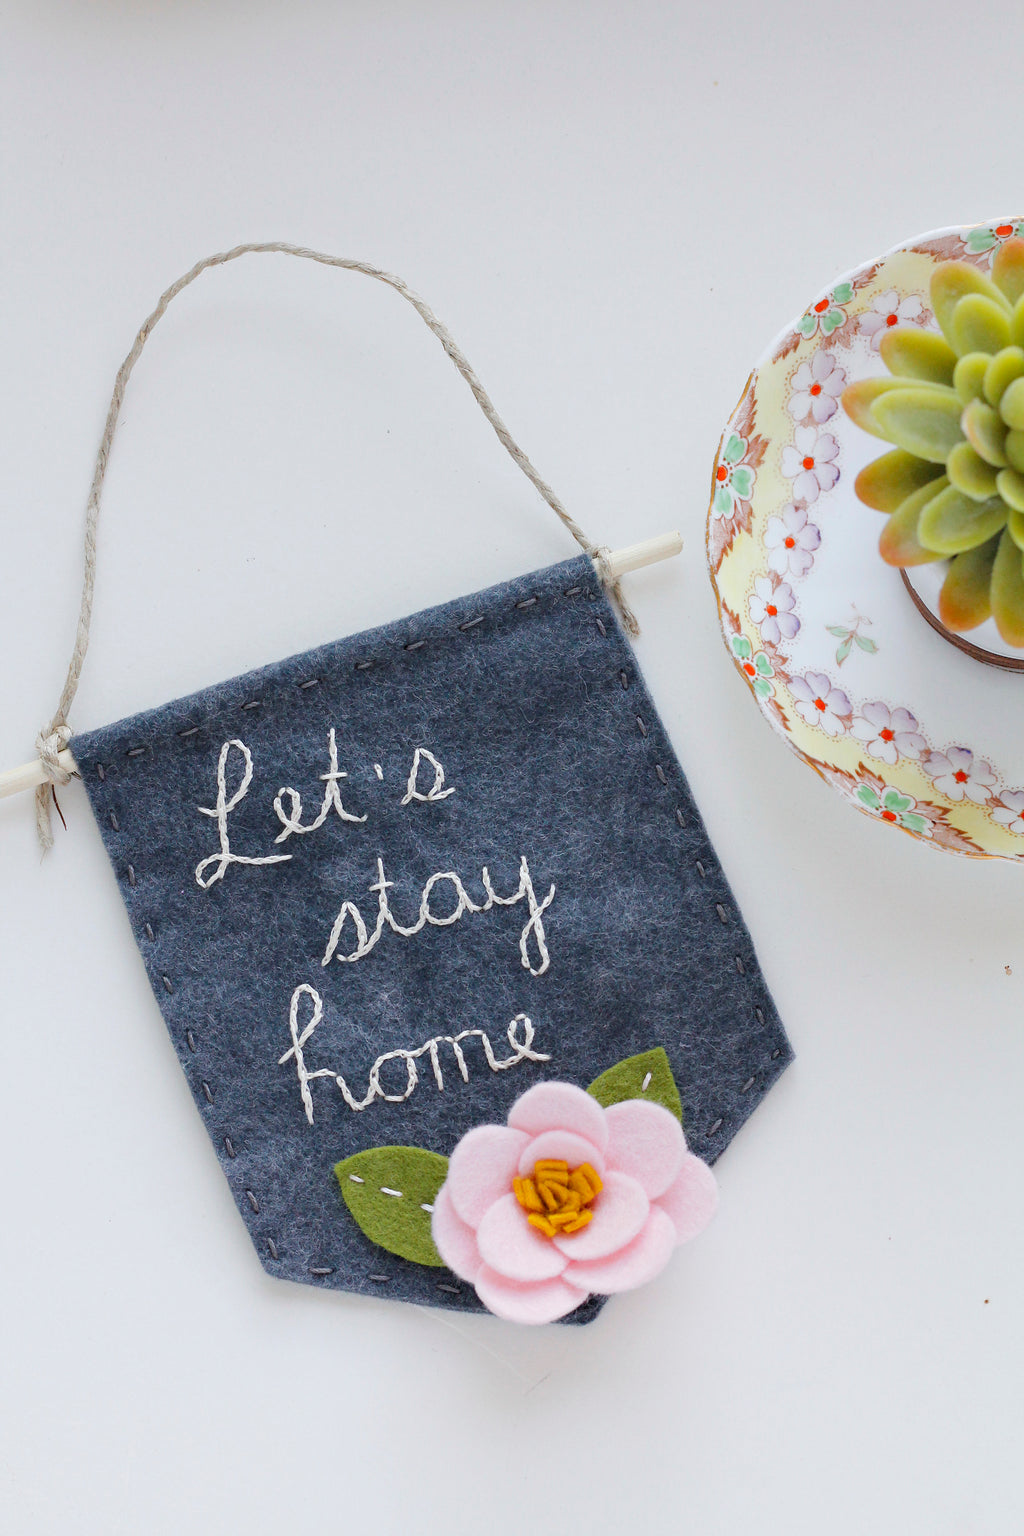 Let's Stay Home Felt Banner